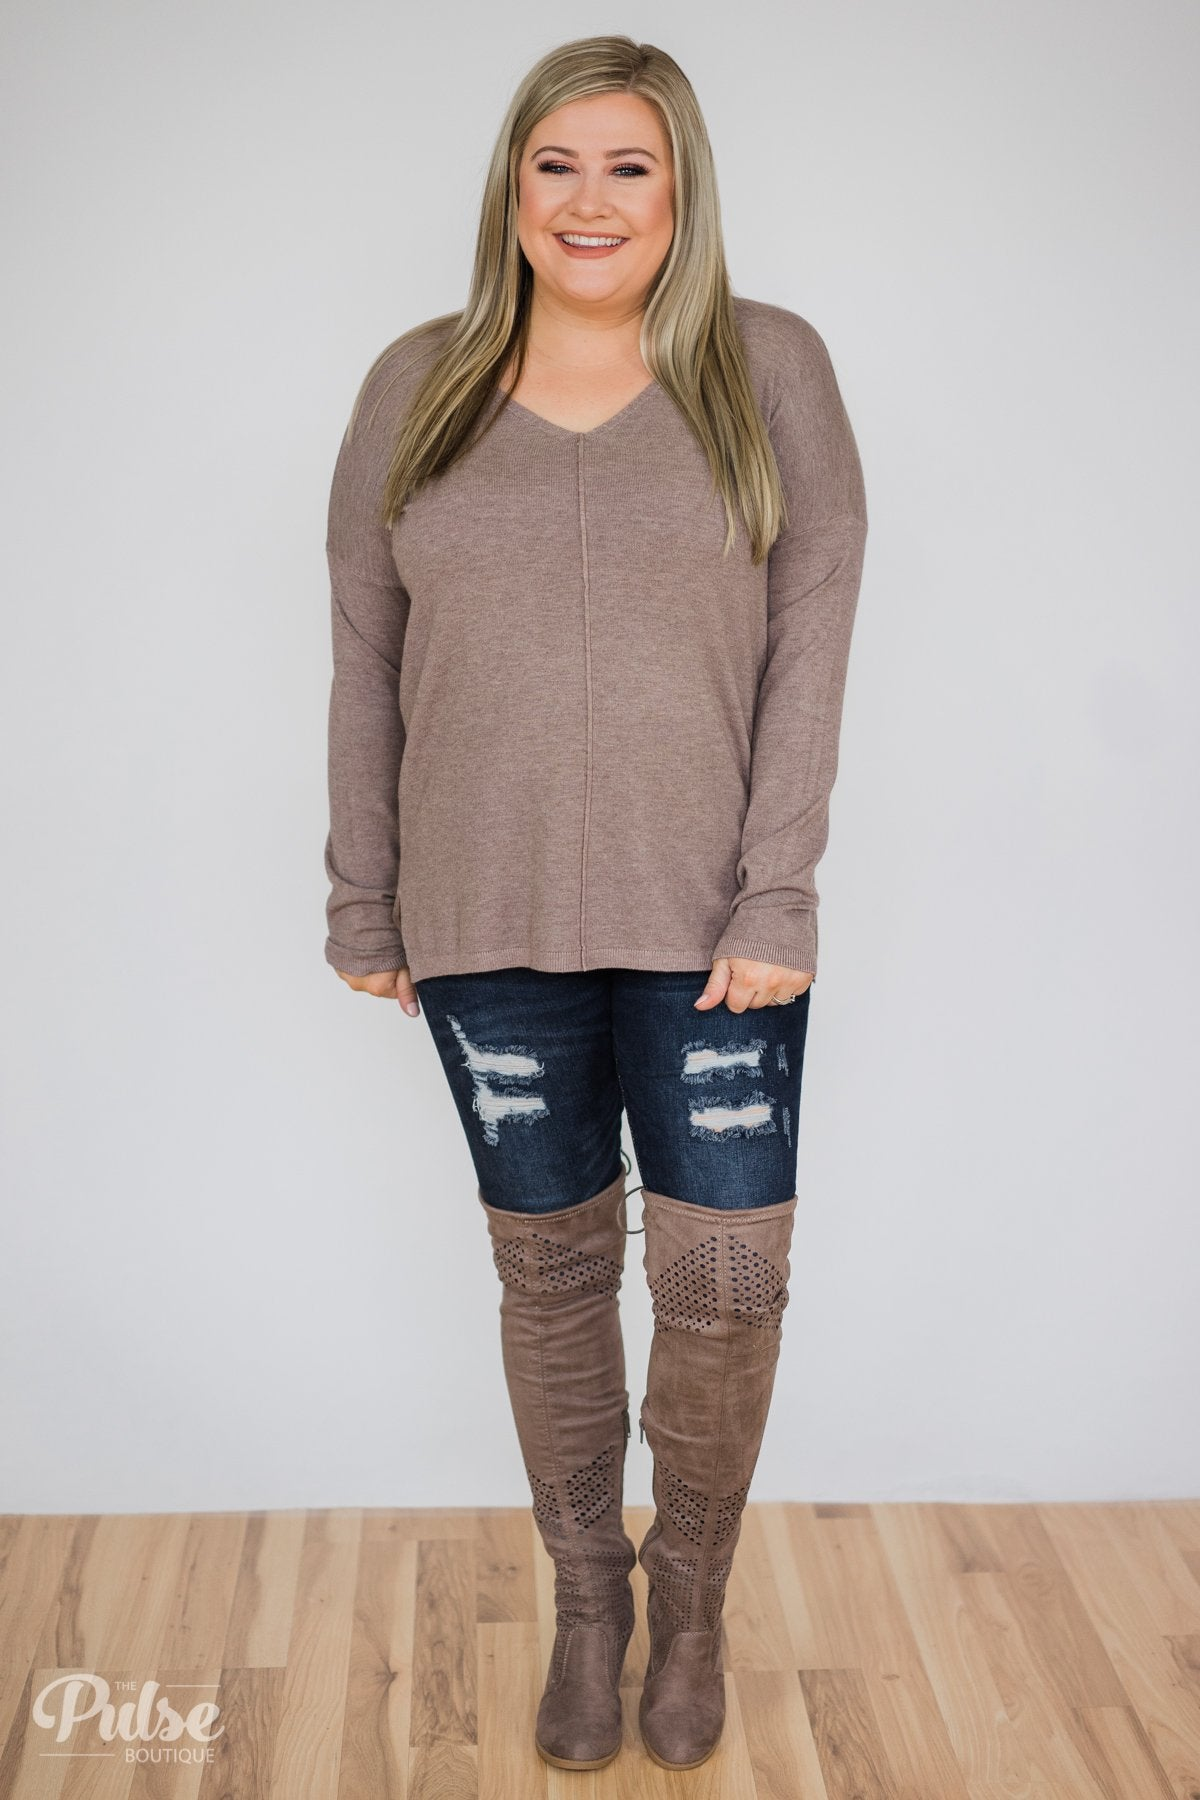 Truly Yours Sweater- Dark Mocha